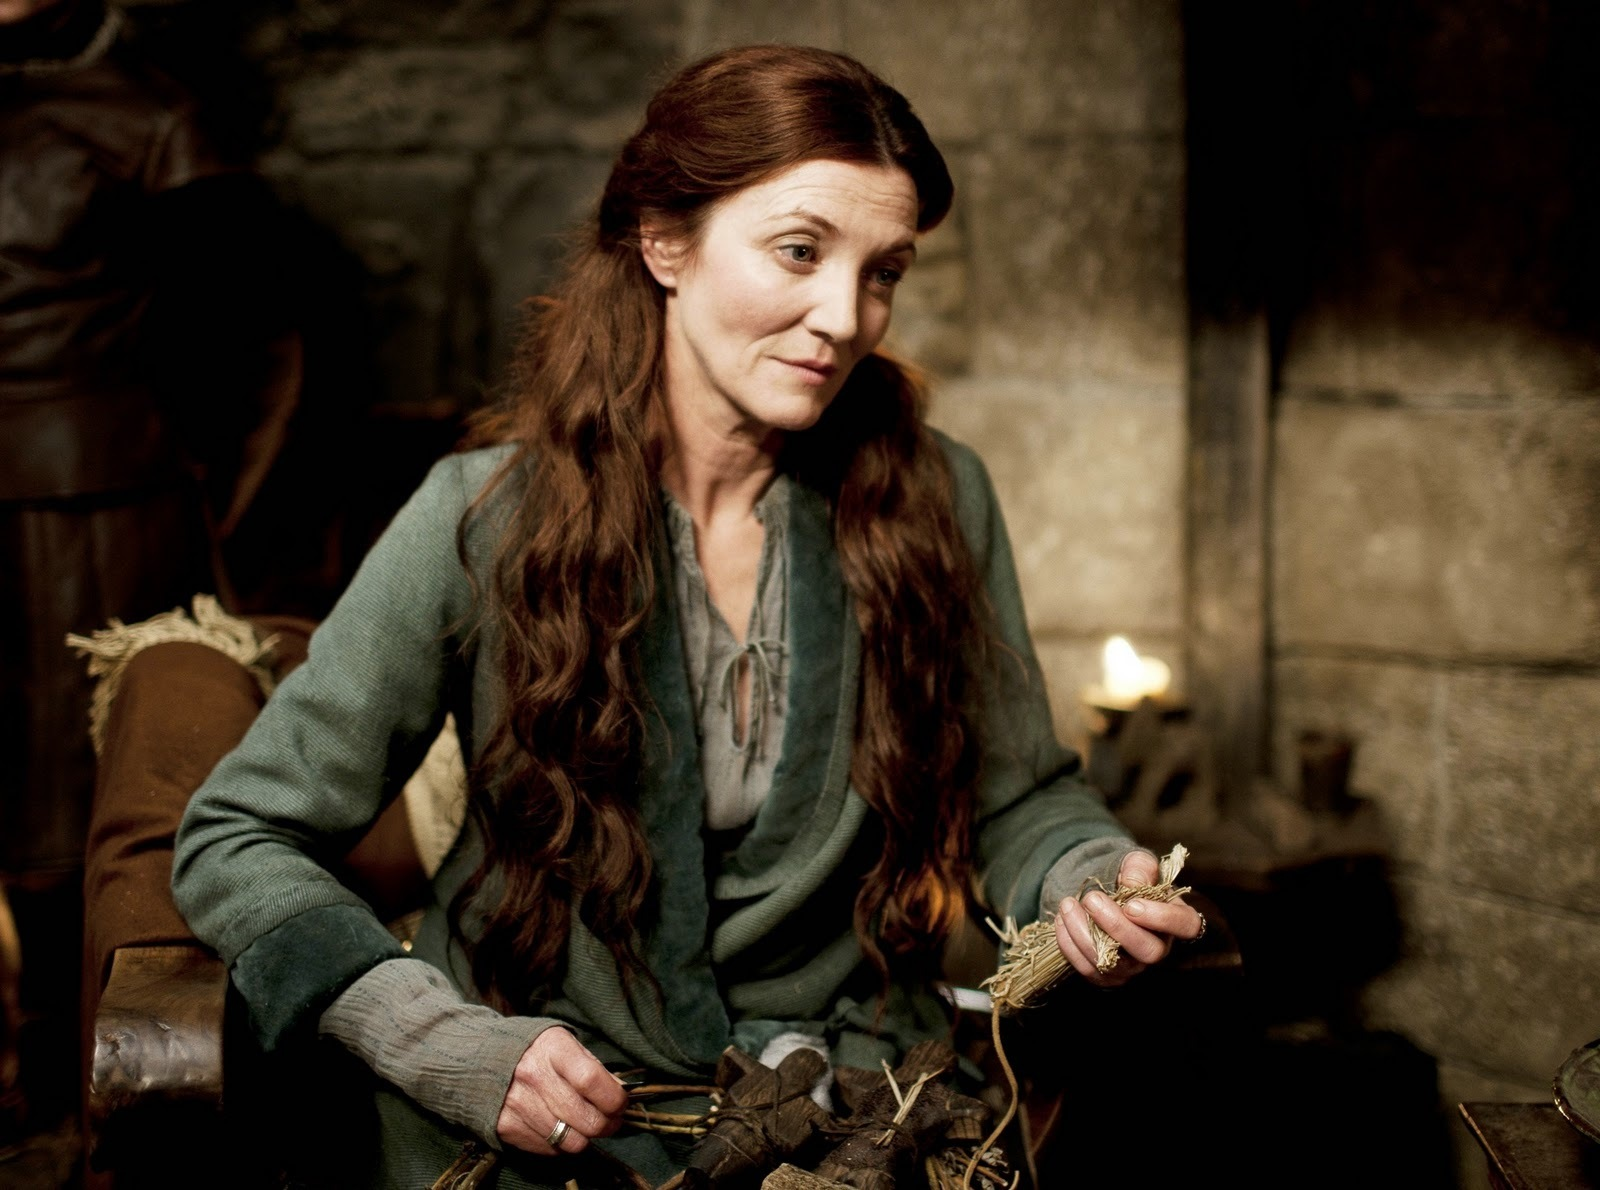 Catelyn Stark Catelyn Tully Stark Photo 24450706 Fanpop